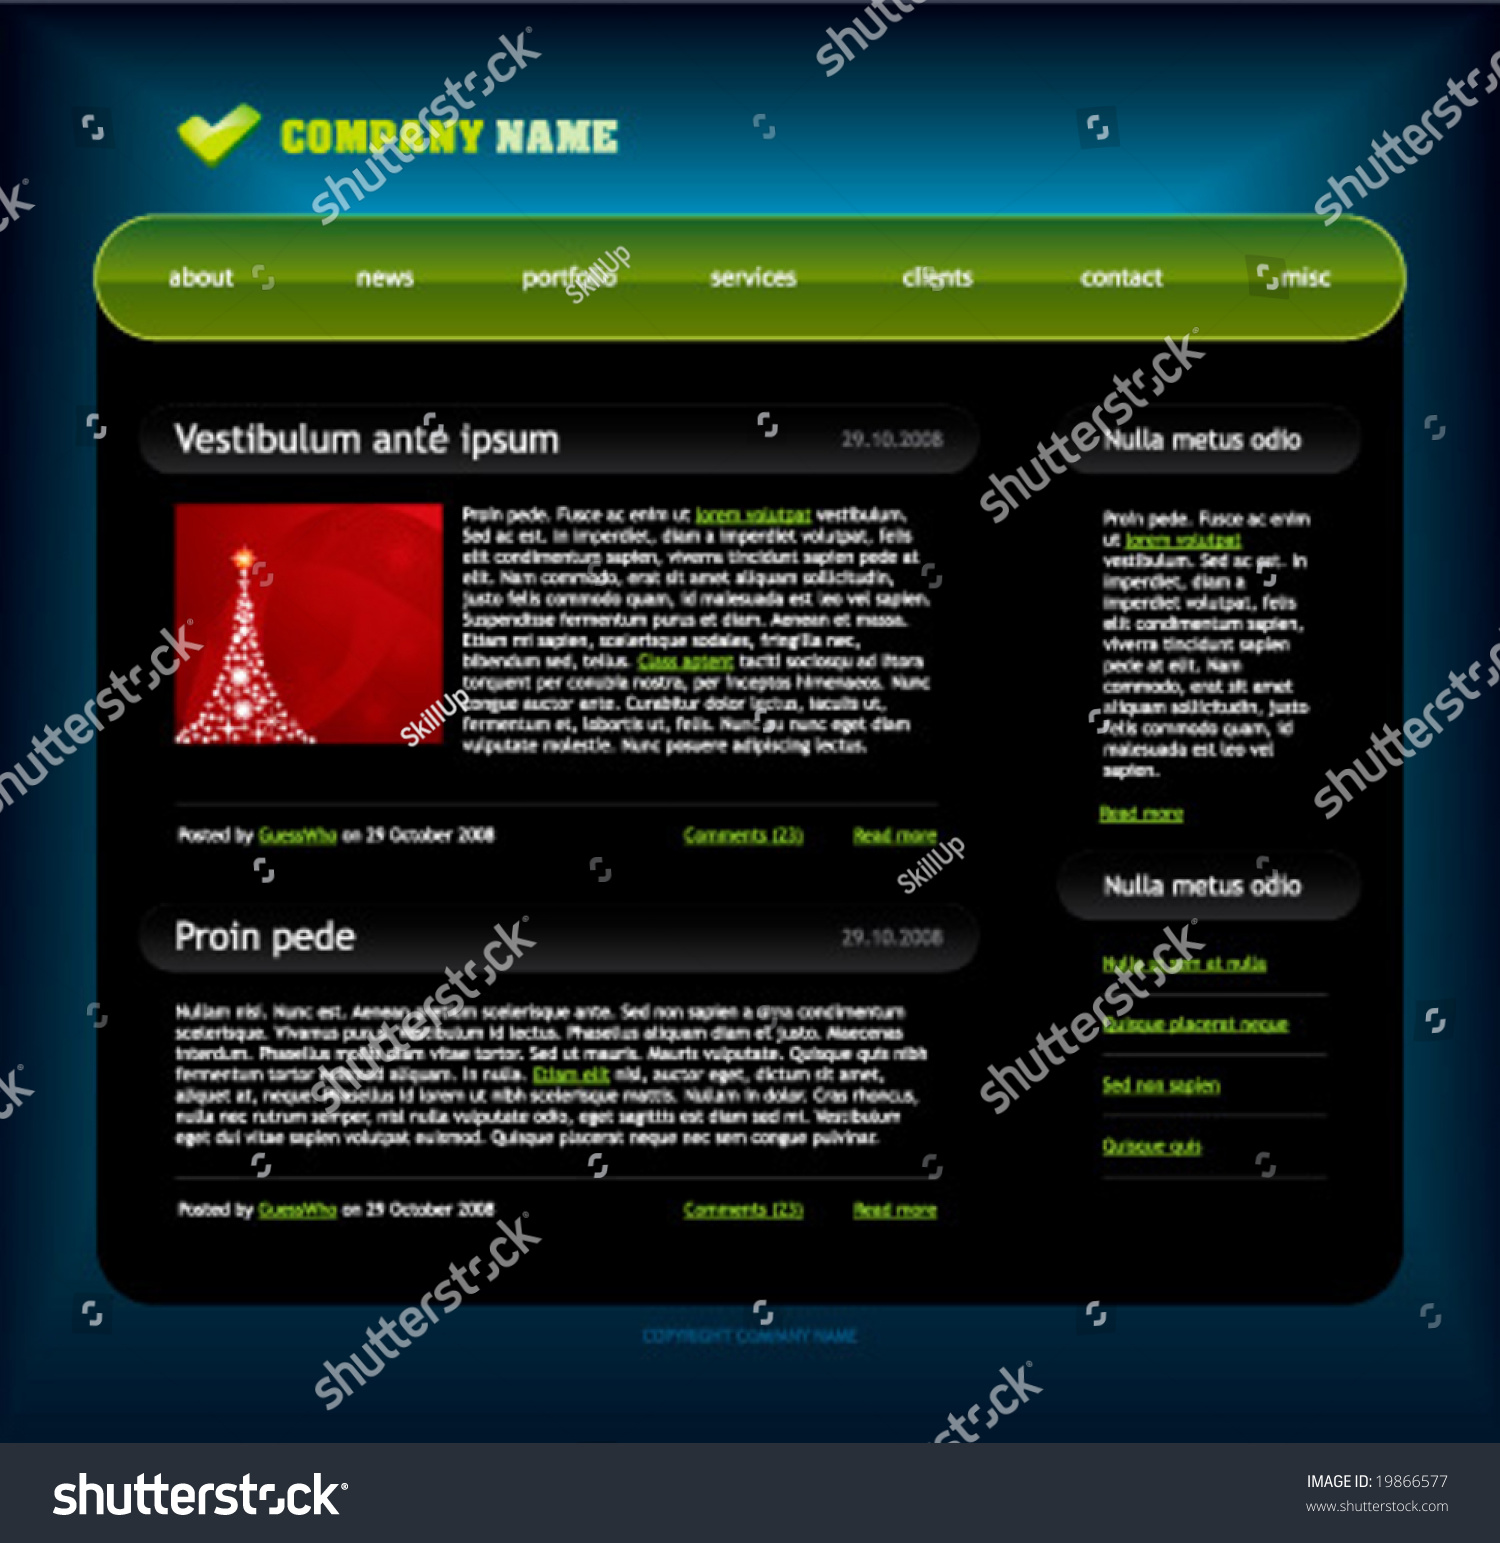 Website template easy use adobe flash stock vector 19866577 website template easy to use in adobe flash or illustrator to export it as a pronofoot35fo Gallery